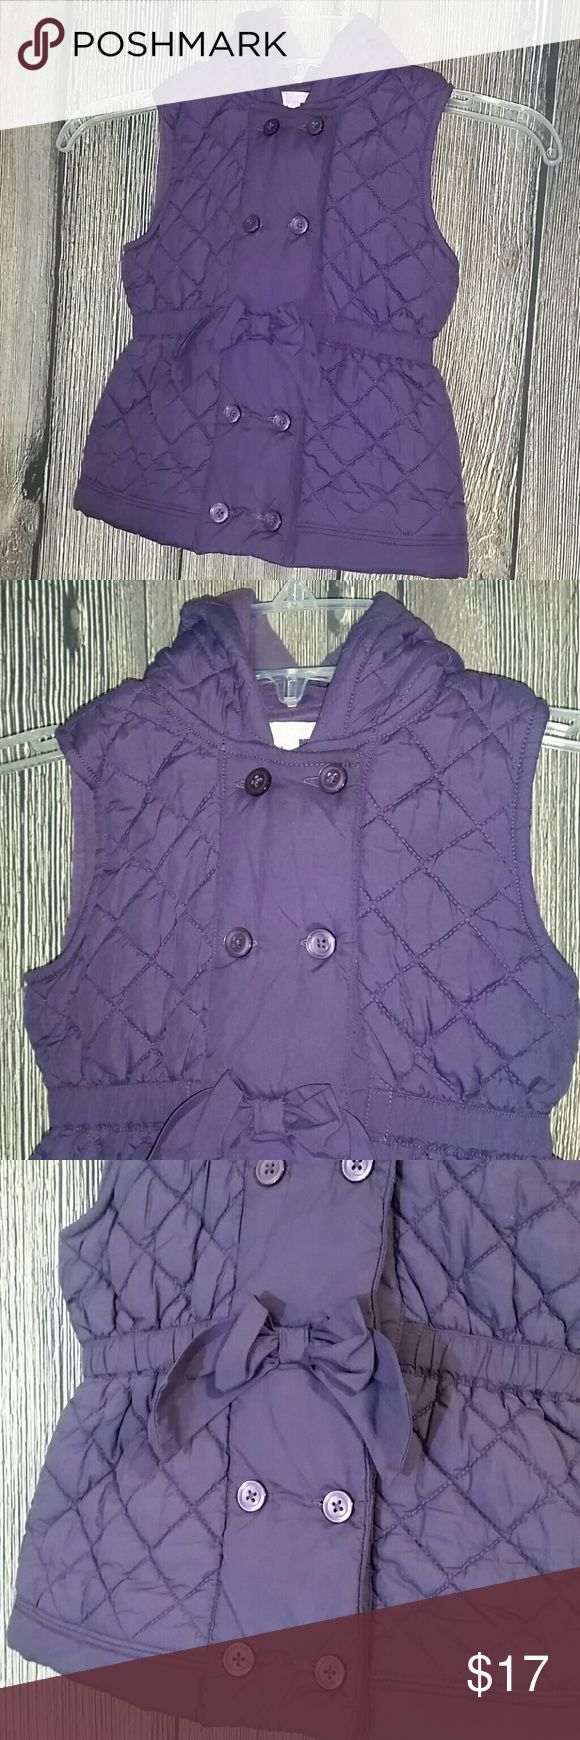 Girls Janie and Jack Sz 4T/5T Purple Blazer Vest Girls Janie and Jack Best Coat. Sz 4T-5T Sleeveless, purple, button down and hooded. Excellent condition. Janie and Jack Jackets & Coats Vests